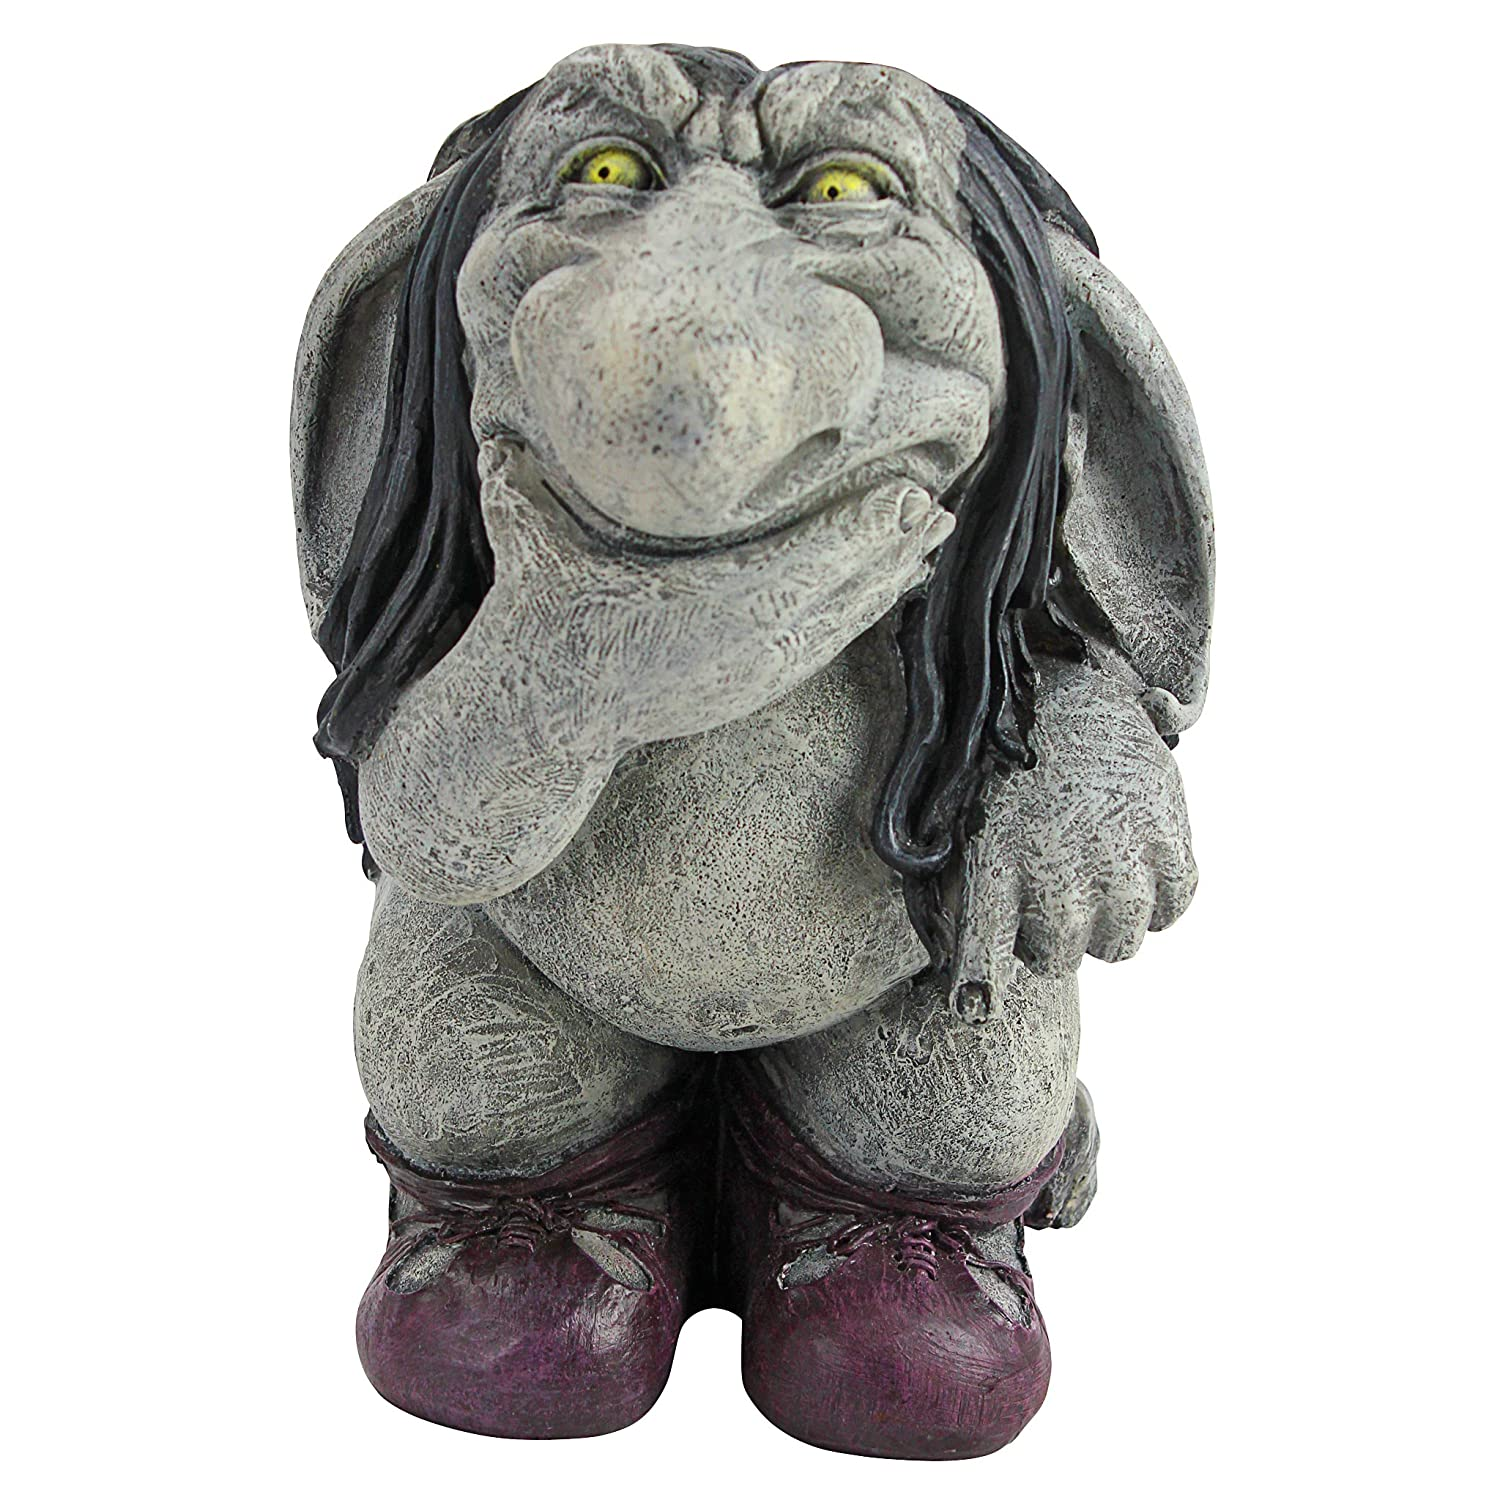 Design Toscano Garden Gnome Statue -Pondering Sylvester the Cynical Gnome Troll - Lawn Gnome